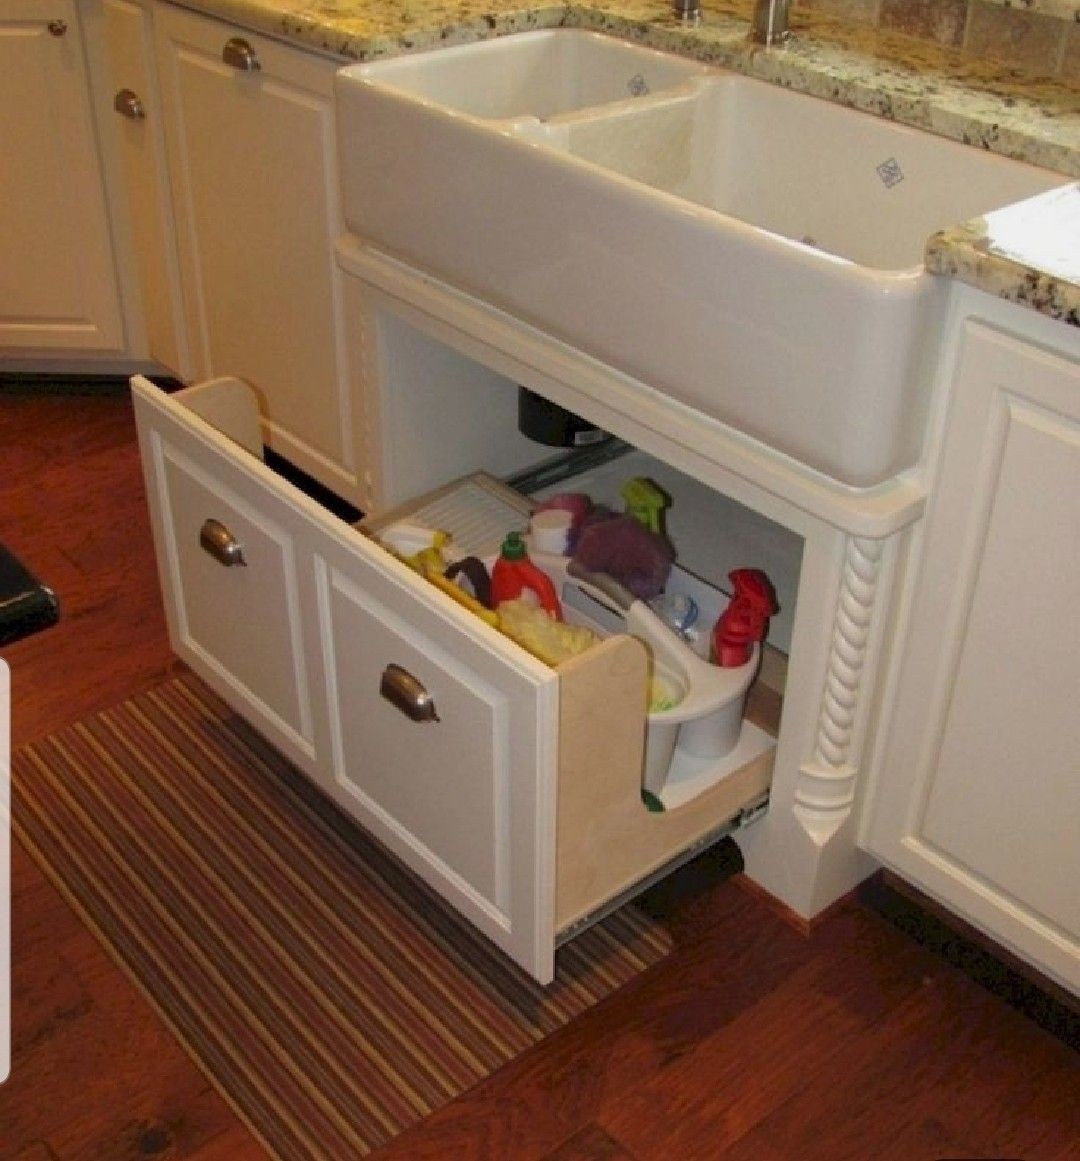 I like the idea of a roll out under the sink instead of ...